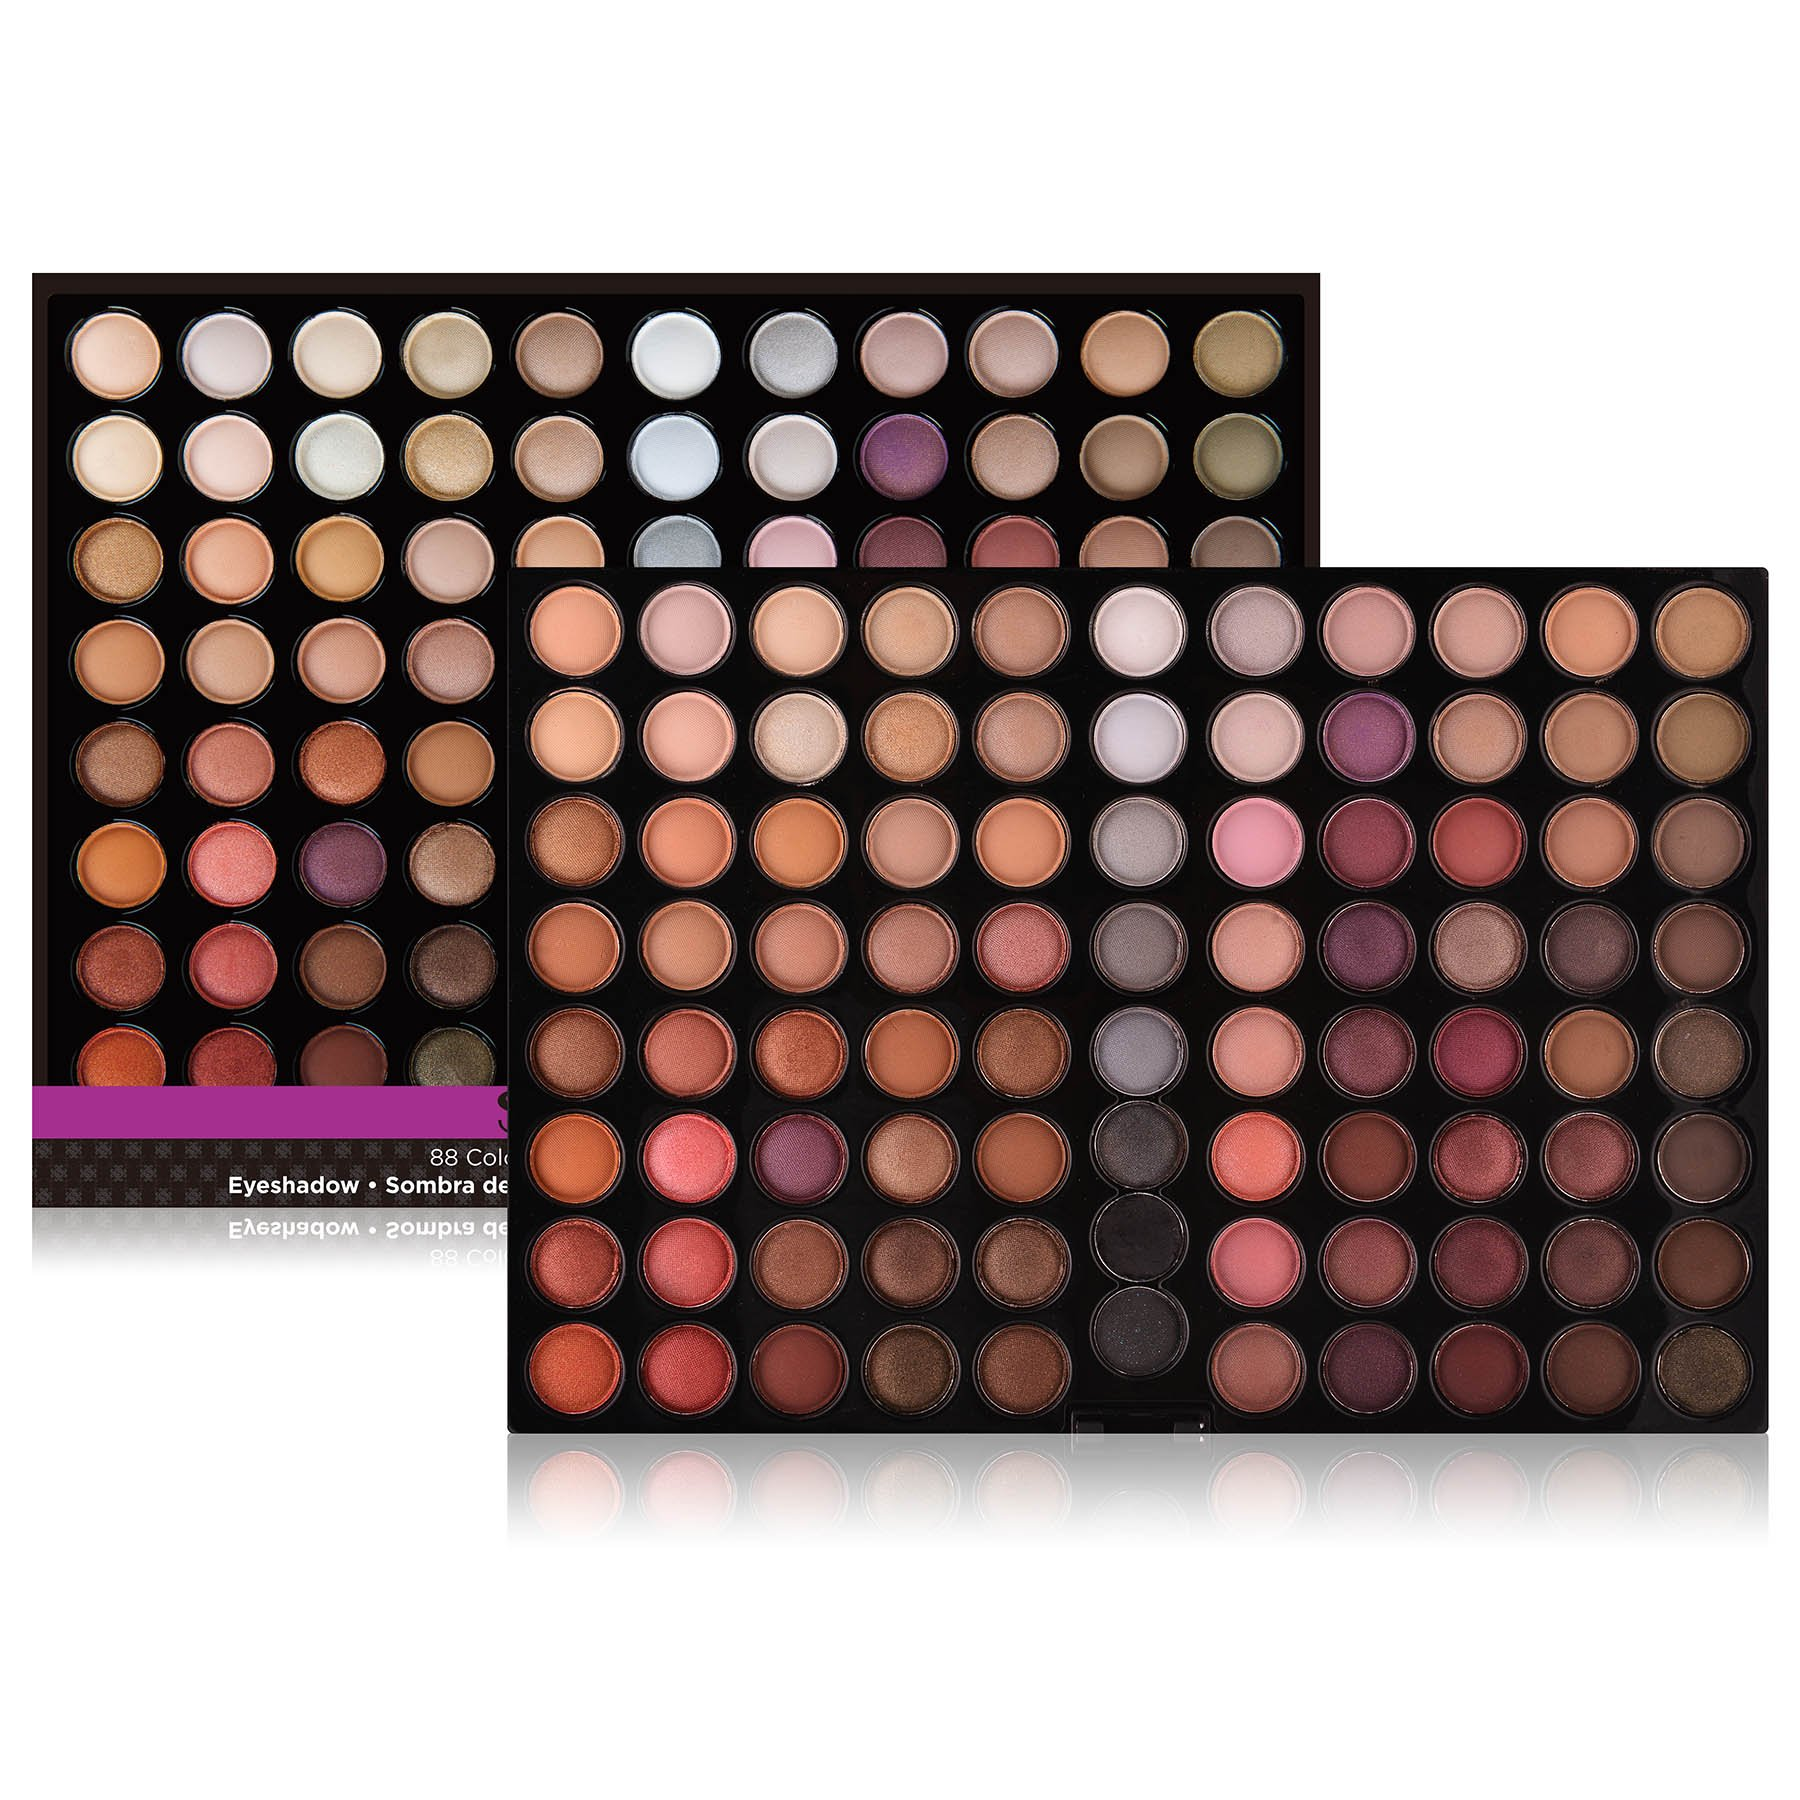 SHANY Natural Fusion Eyeshadow Palette (88 Color Eyeshadow Palette, Nude Palette), 2.15 Ounce by SHANY Cosmetics (Image #2)